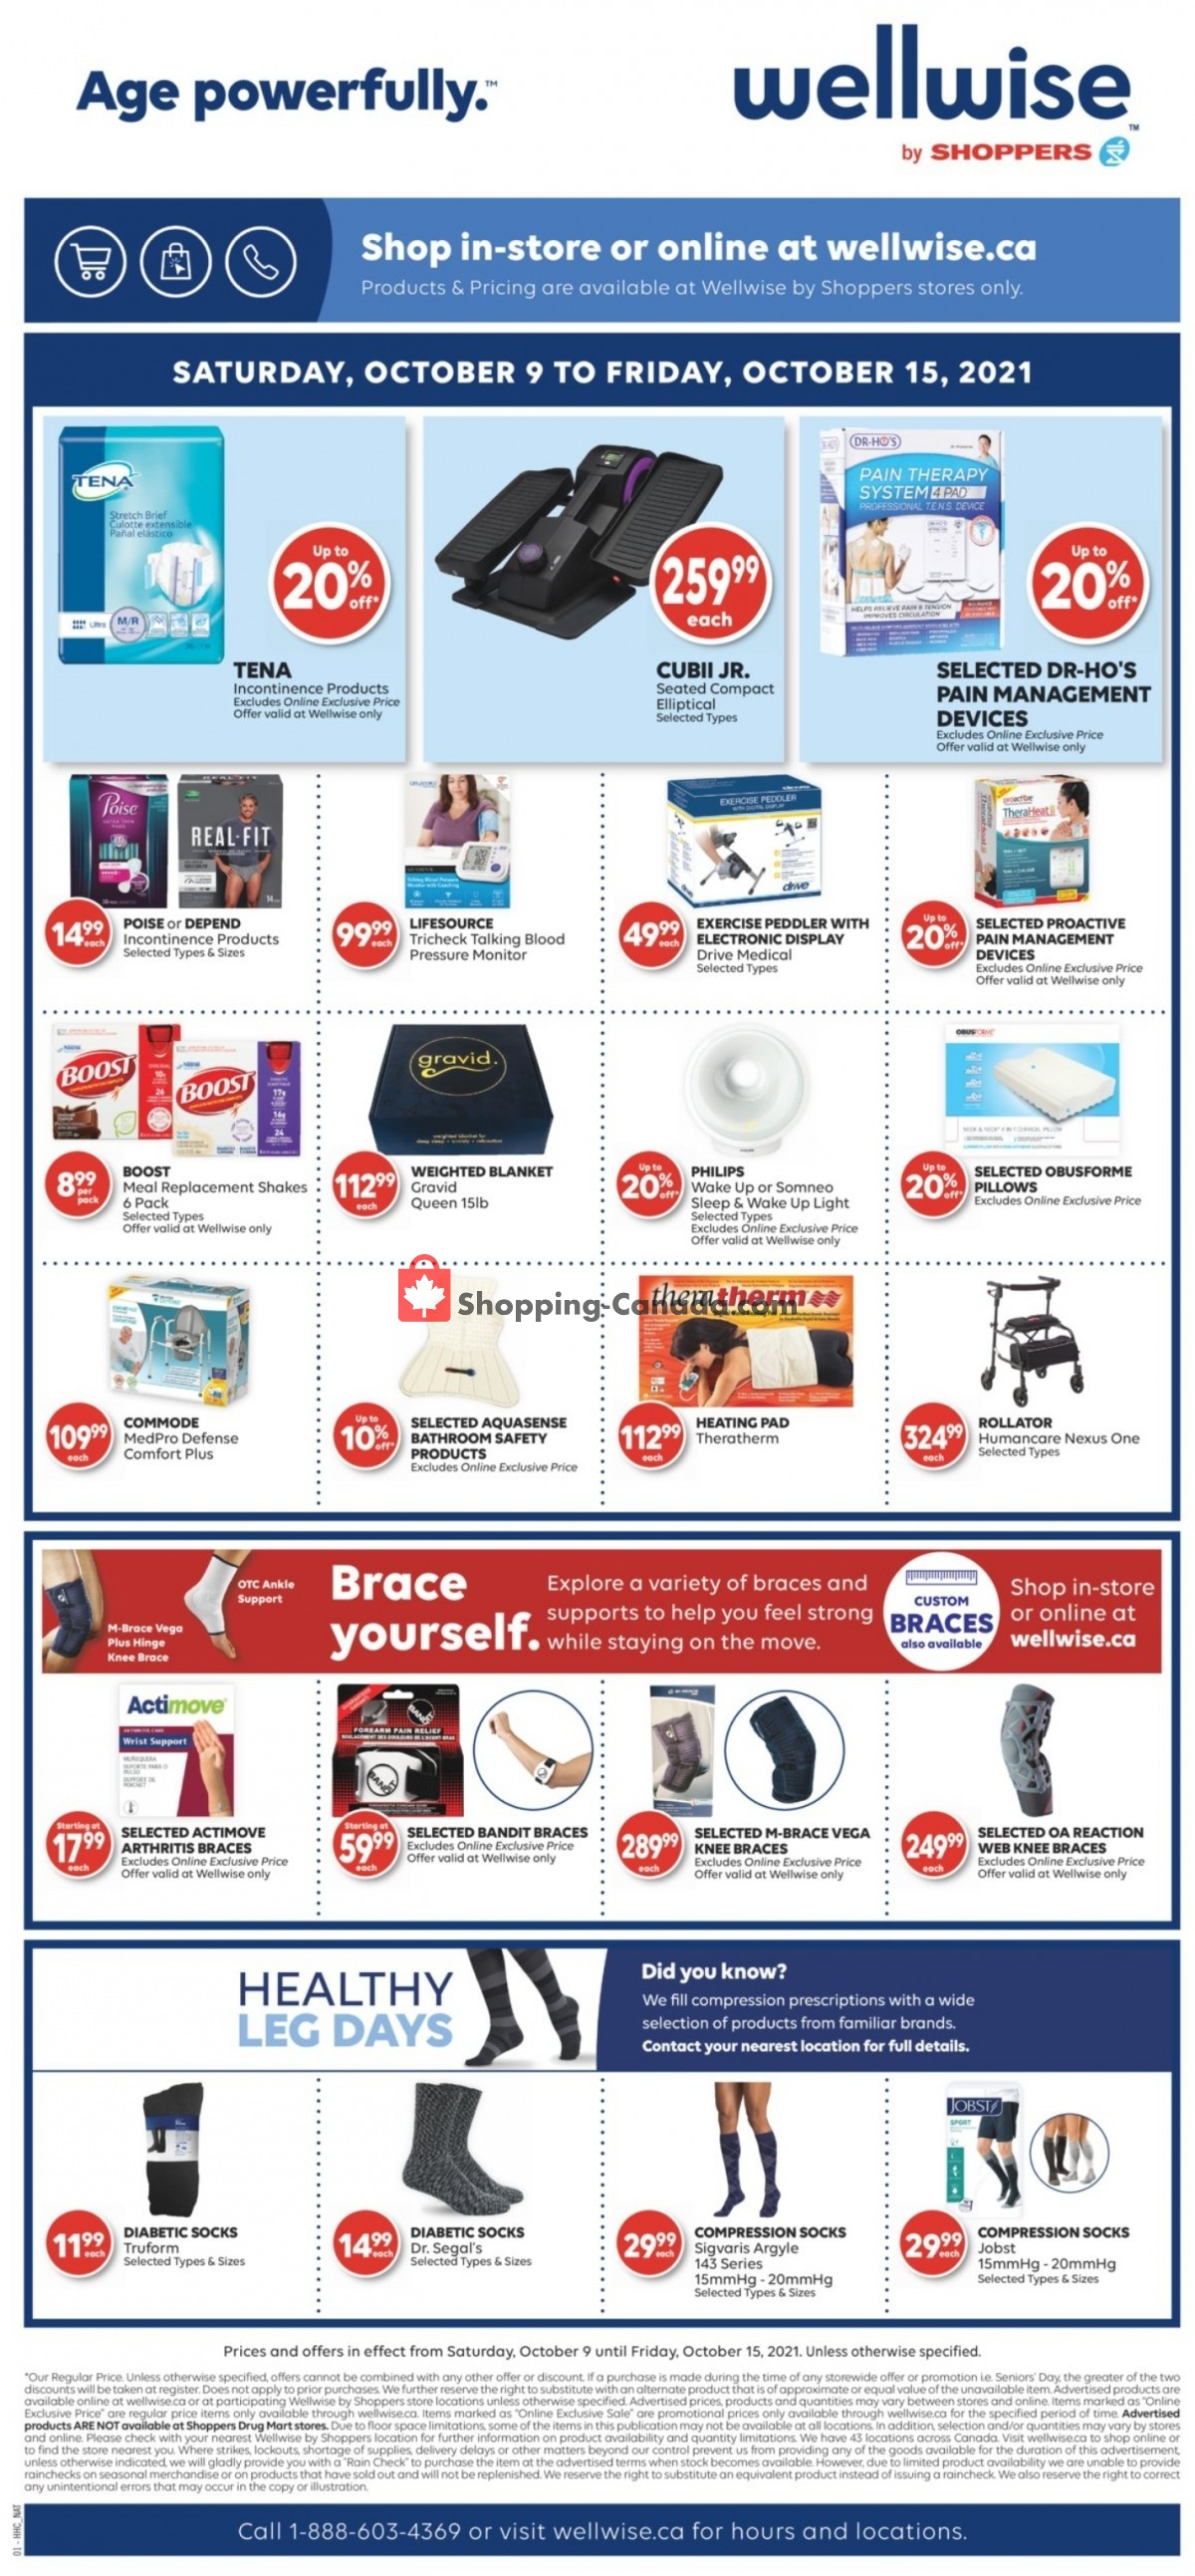 Flyer WellWise by Shoppers Drug Mart Canada - from Saturday October 9, 2021 to Friday October 15, 2021